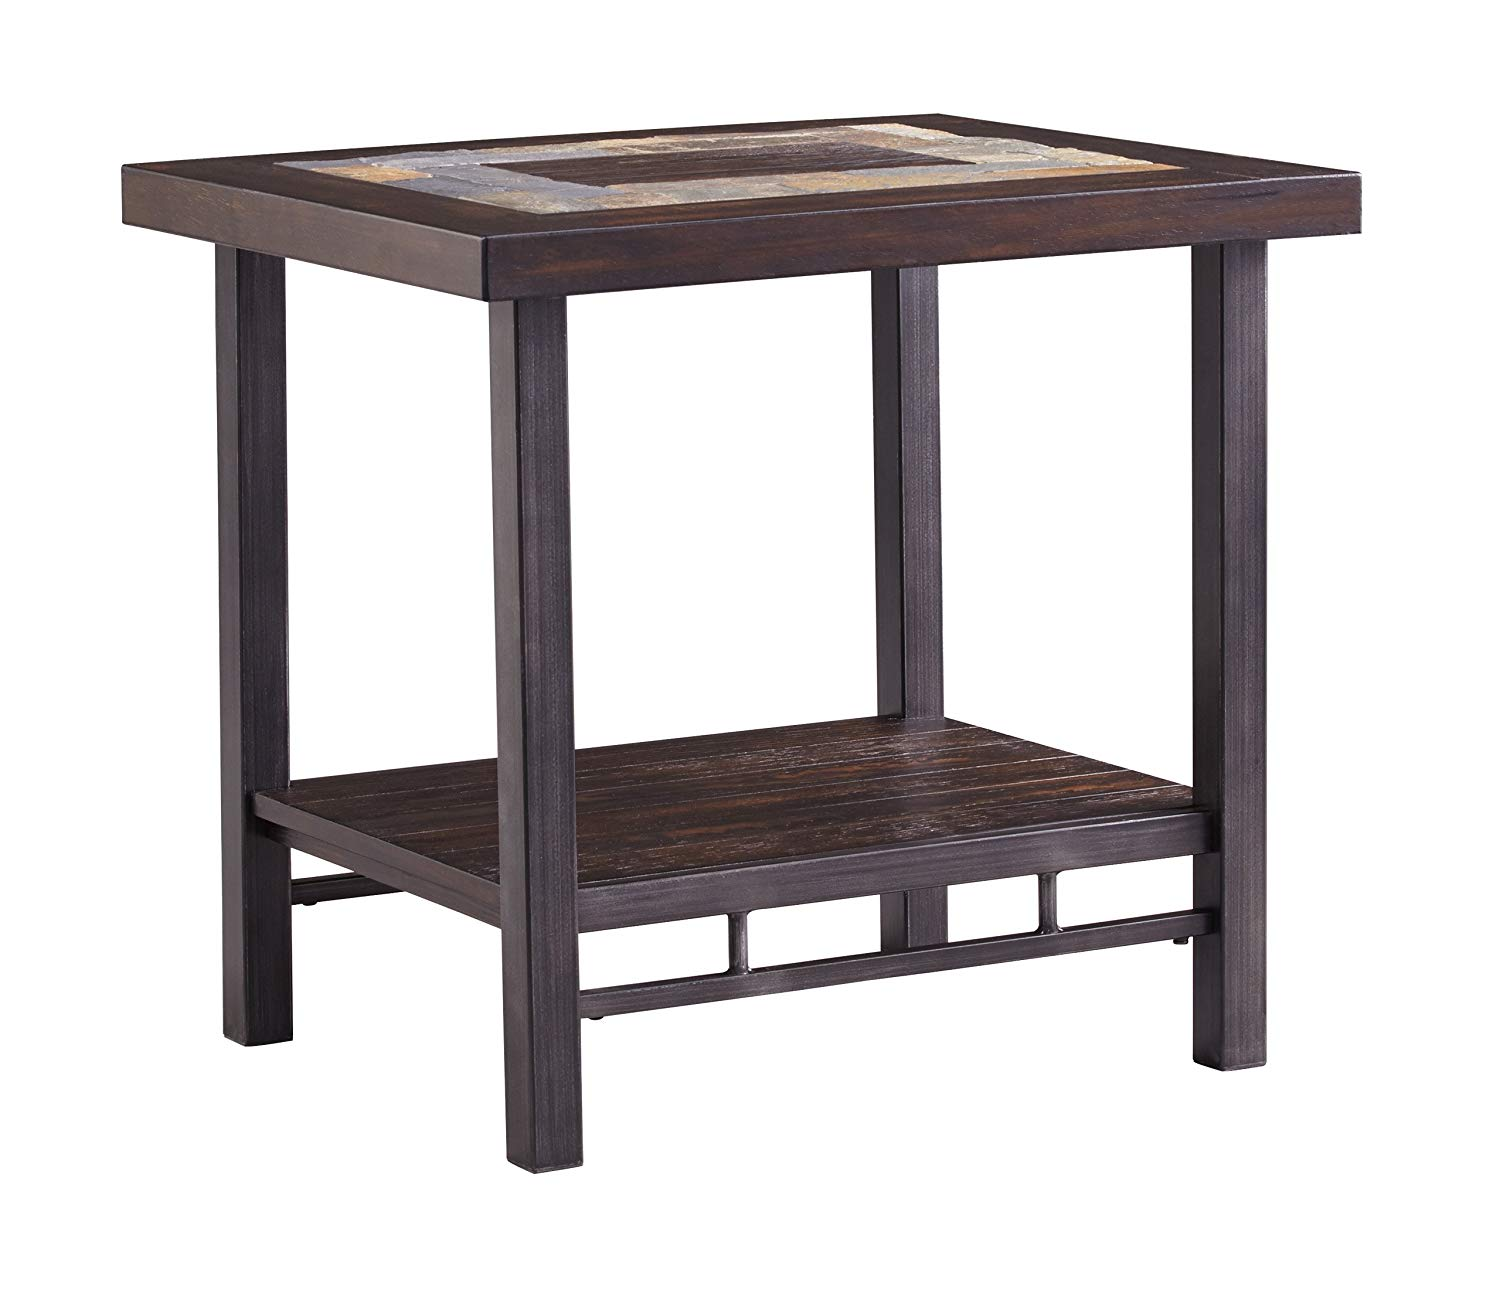 ashley furniture signature design gallivan casual two slate end table tone rectangular multicolored kitchen dining home farnichar solid marble coffee fireplace seating